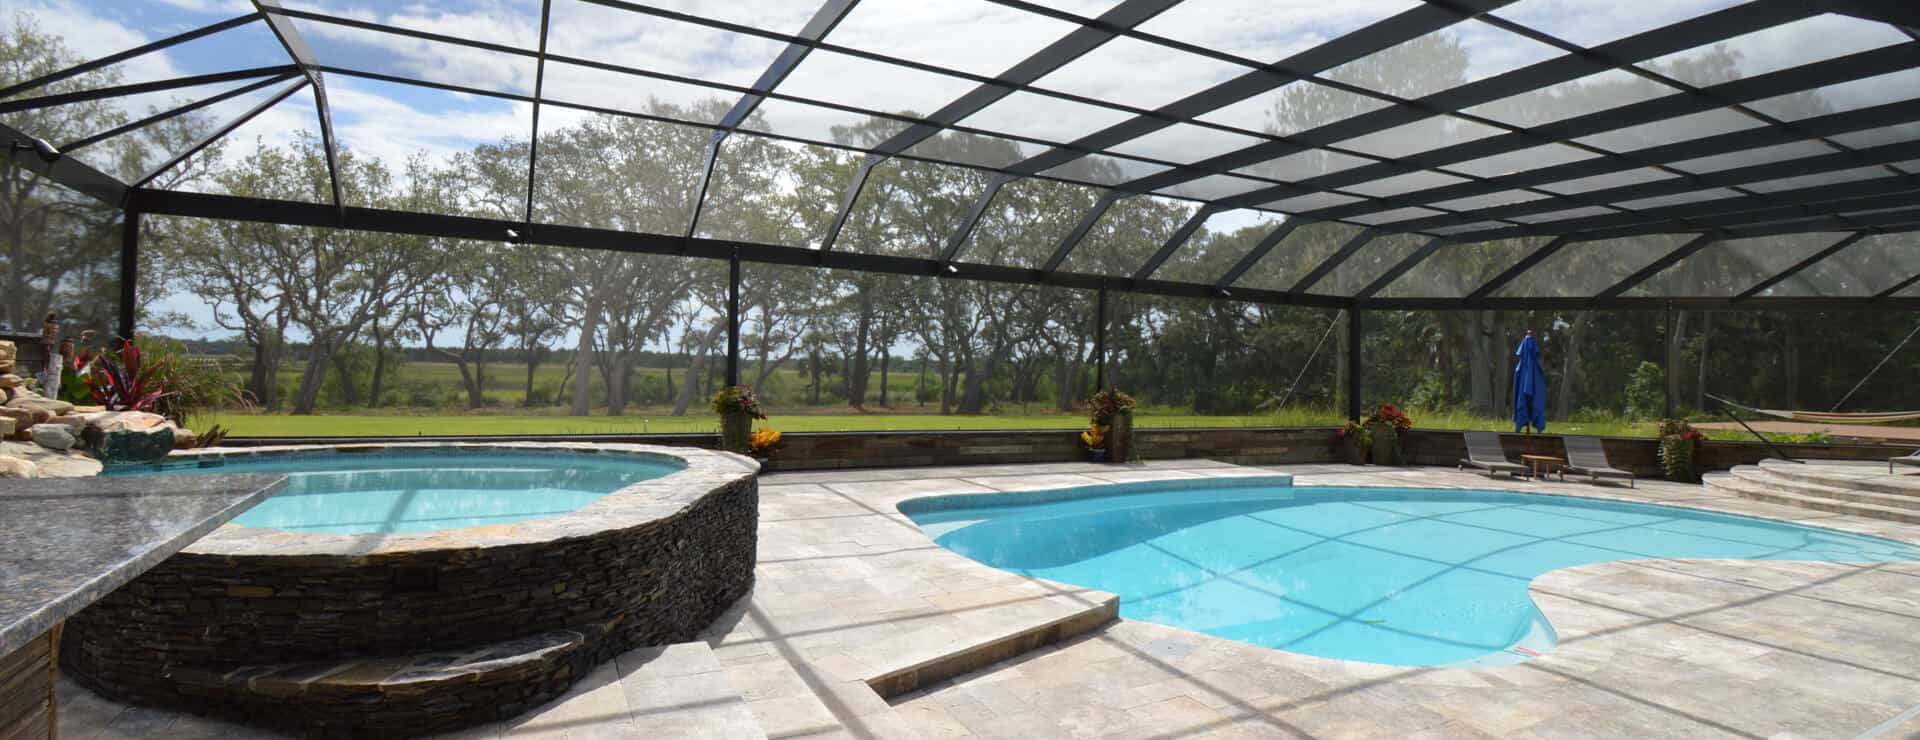 Swimming Pool Enclosures Screen Room Sunroom Tropical Enclosures